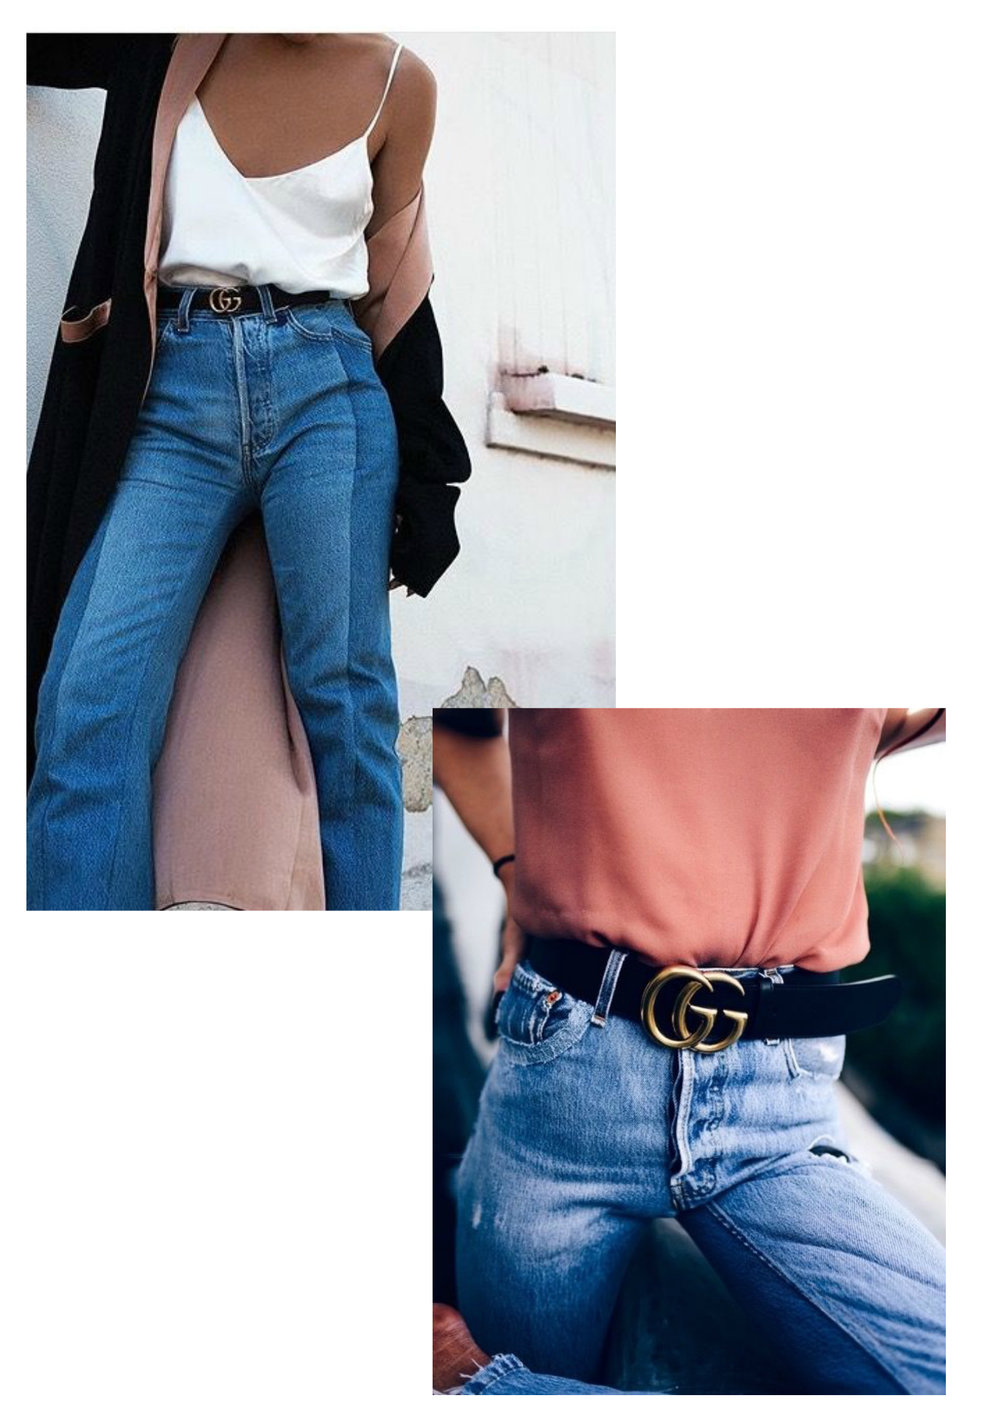 22cc67261 Wear it with denim shorts and a tee shirt and you're good to go. Here are  some of my favorite styling inspirations with the belt, hope you enjoy!